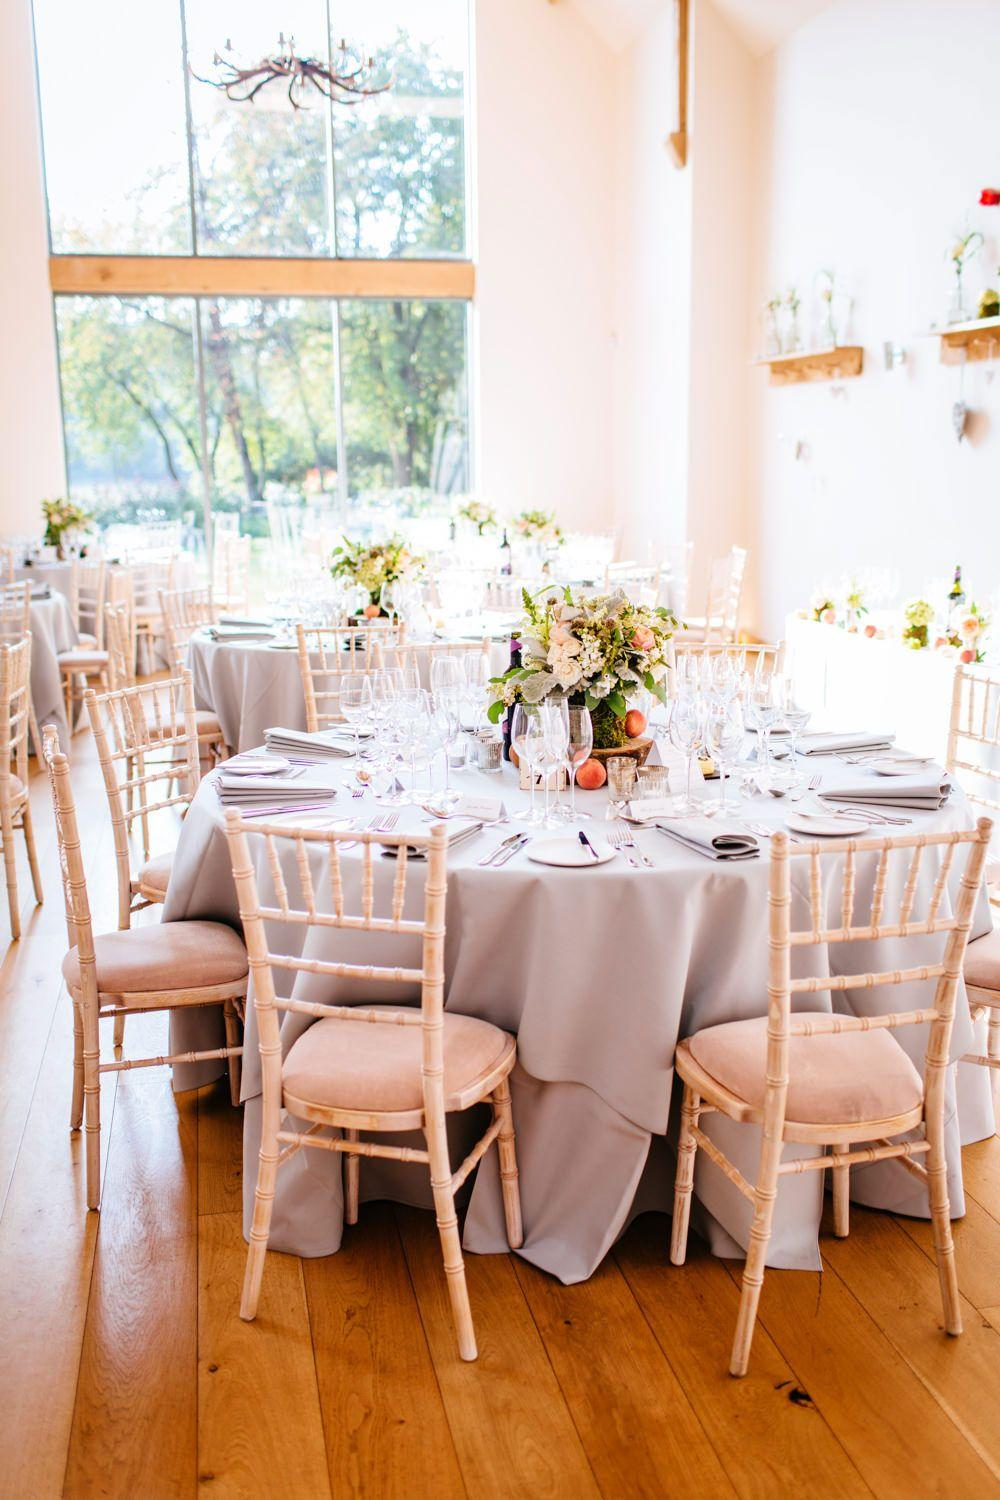 Simple Wedding Decorating: 95 Smashing Ideas to Be Inspired 47